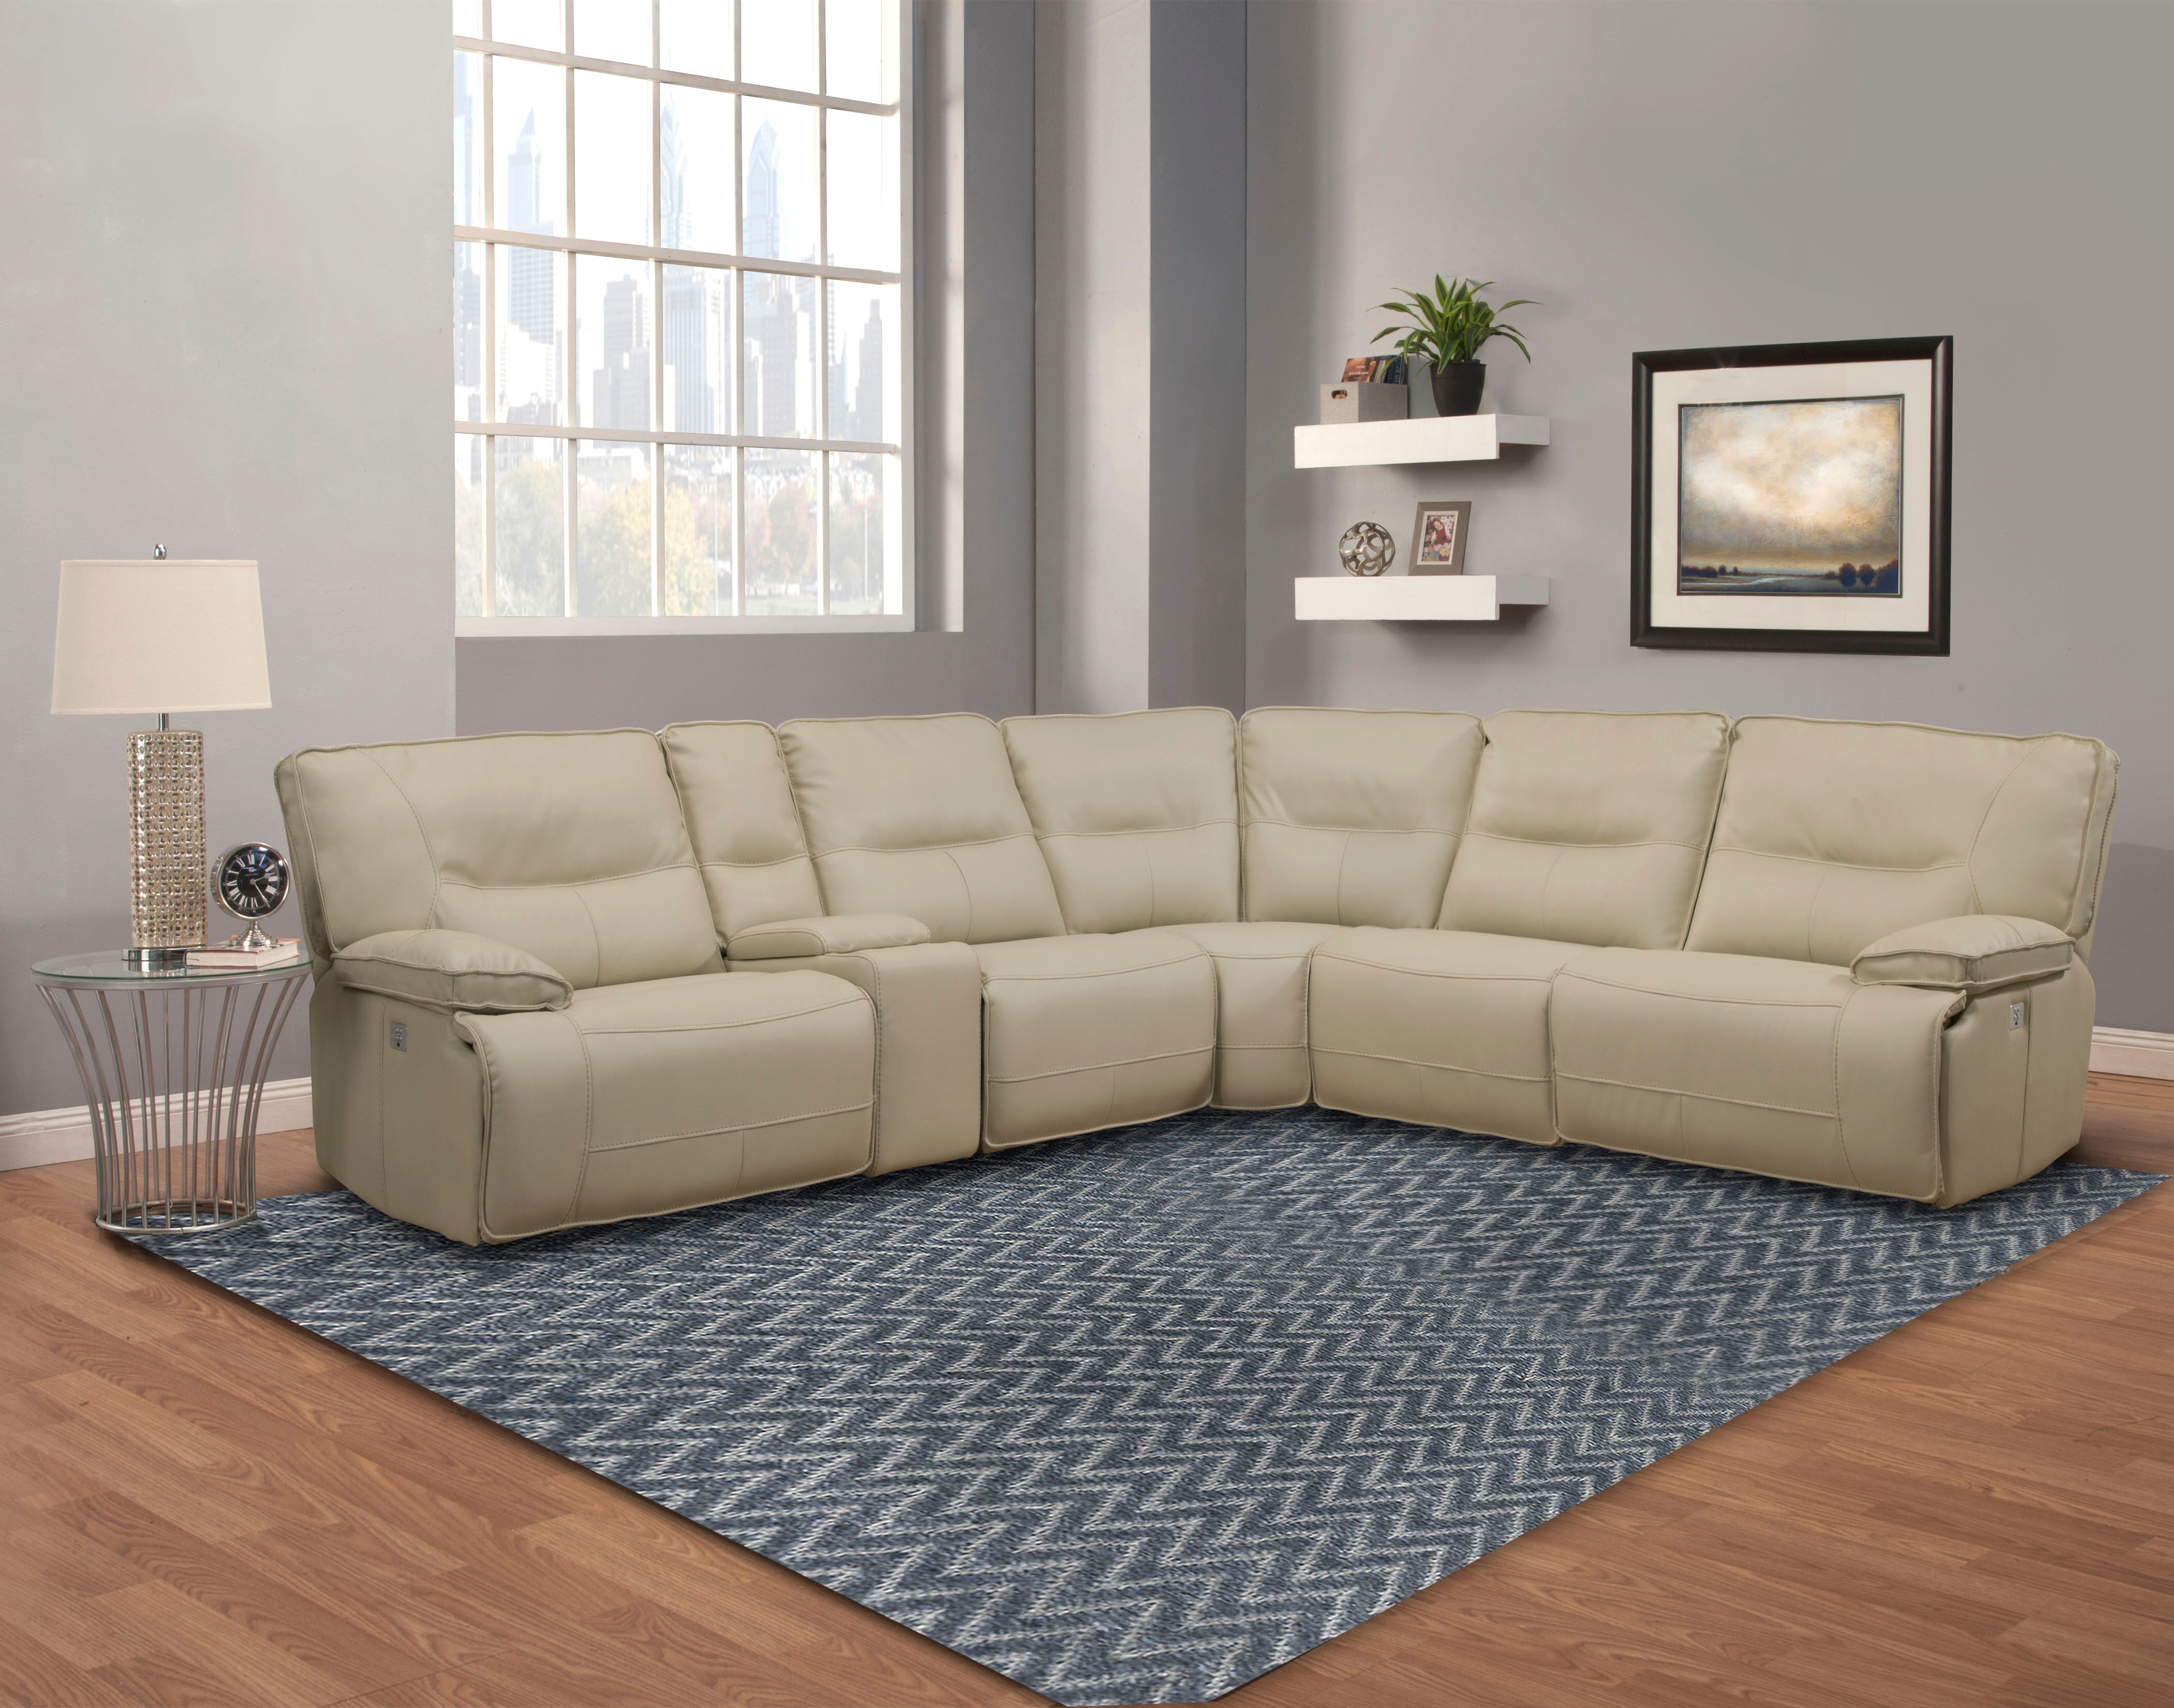 Springfield Power Recliner Sectional Image